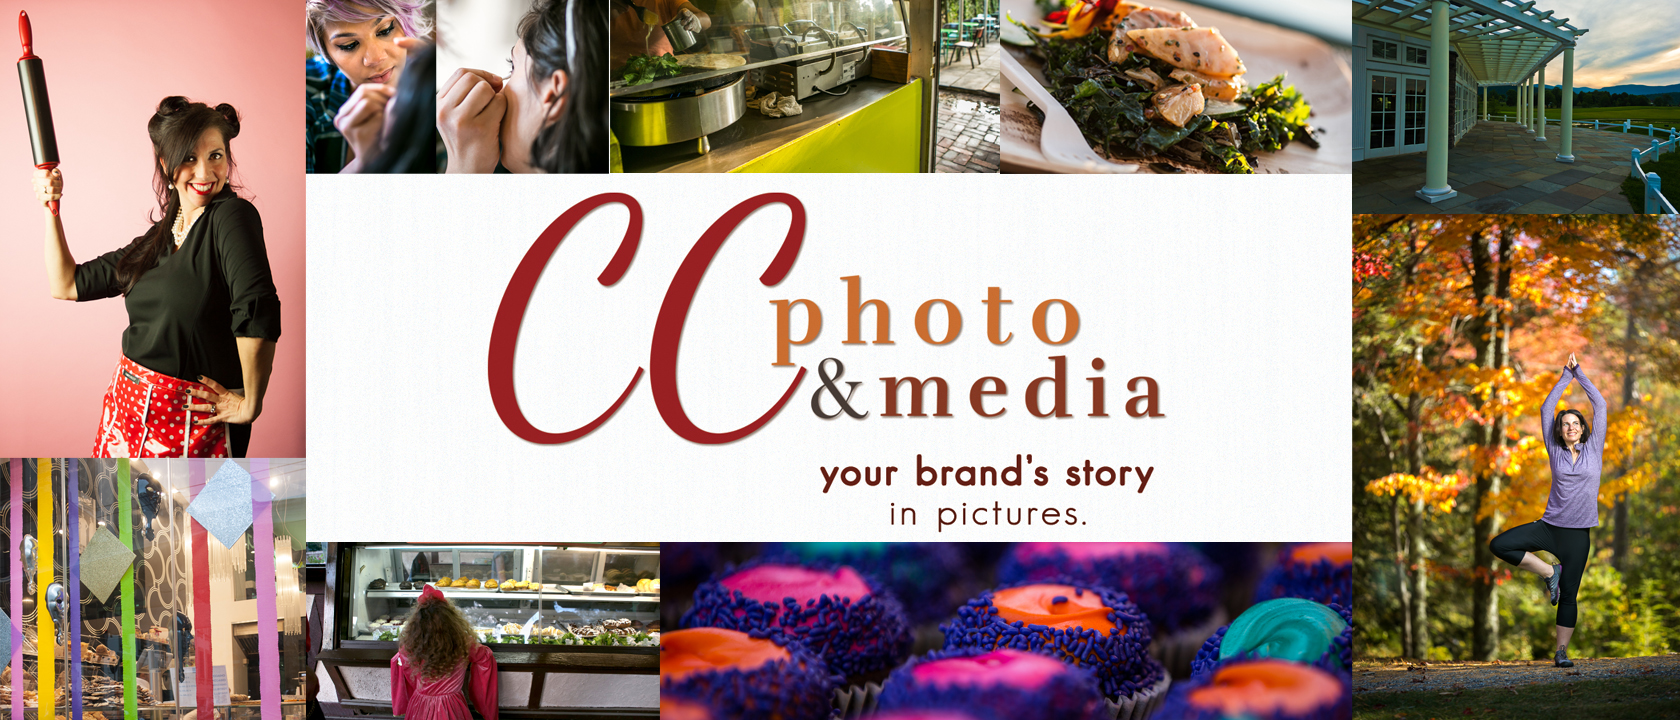 cc photo & media - telling your brand's story through pictures